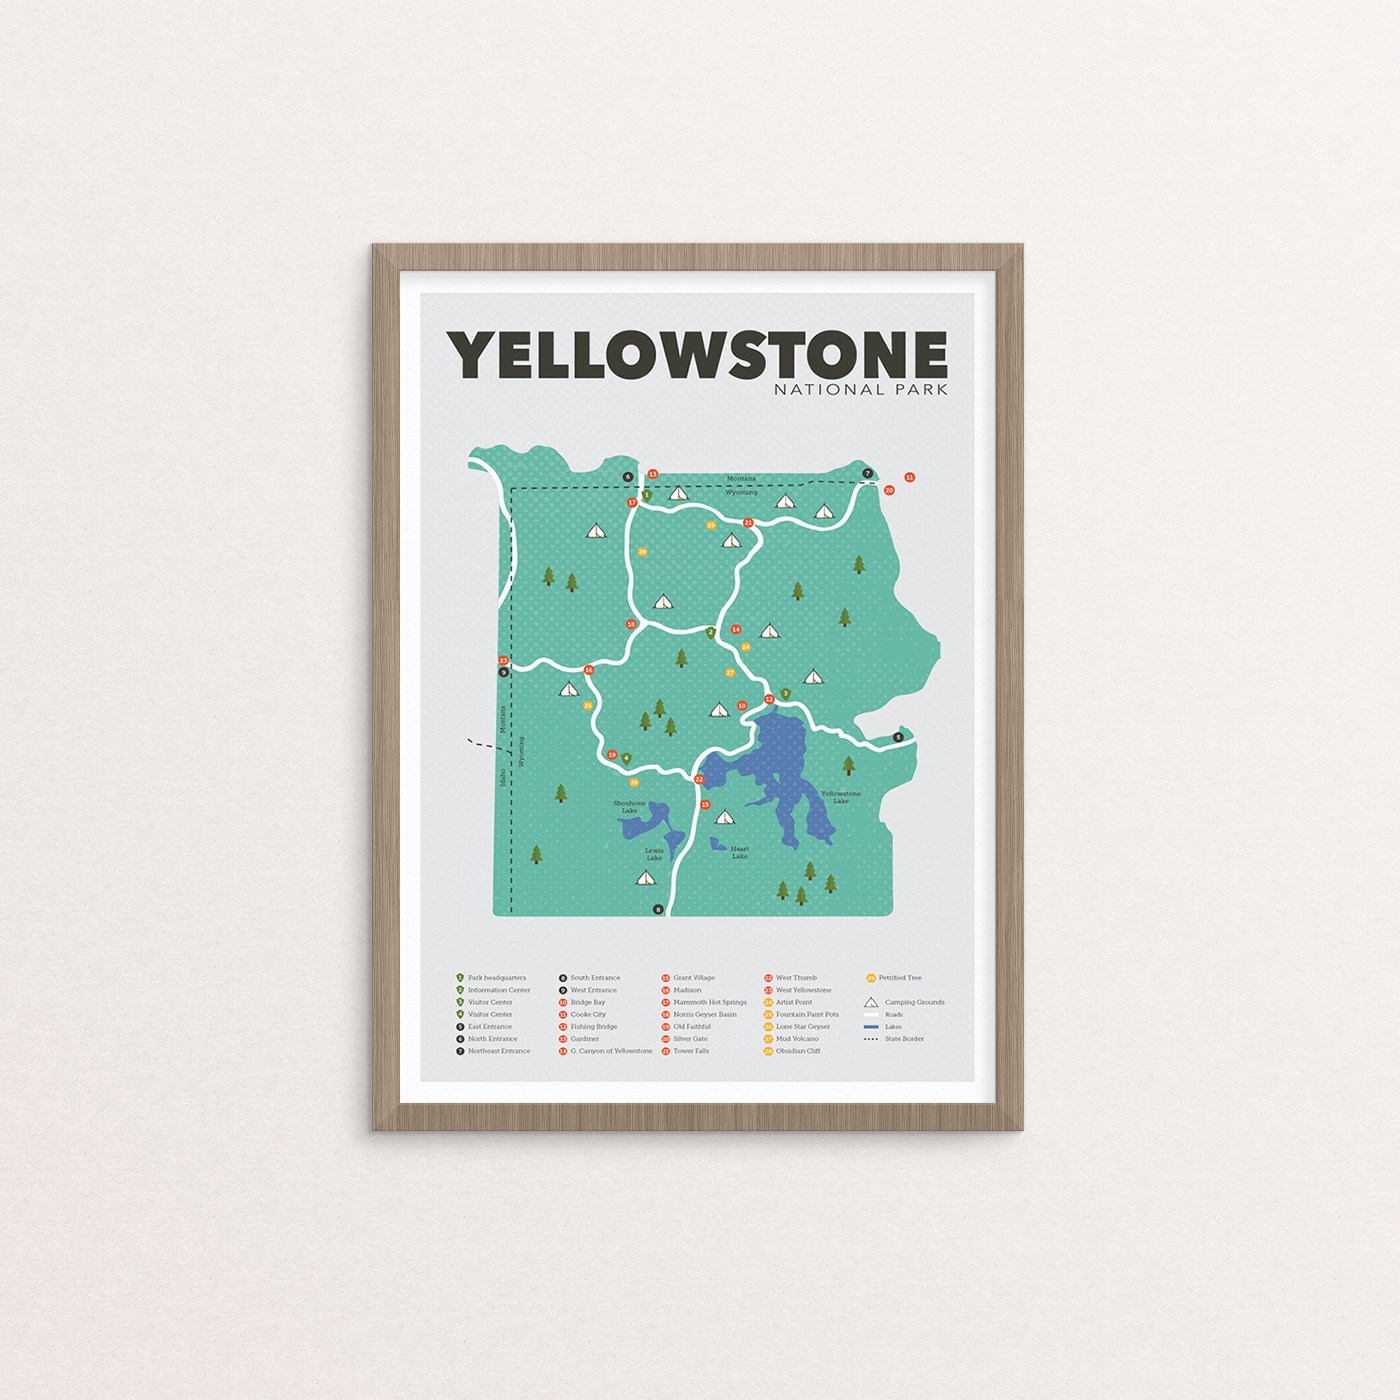 Yellowstone National Park Map – SlickTurtle on medicine bow national forest camping map, yellowstone np map, tonto national forest camping map, white river national forest camping map, redwood national park camping map, pike national forest camping map, yellowstone on us map, west yellowstone city map, colorado camping map, yellowstone rv camping map, yellowstone wolf pack map, yellowstone river map, yellowstone backcountry camping map, yellowstone nationa park map, zion national park map, canaveral national seashore camping map, sequoia national park camping map, bighorn national forest camping map, grand canyon camping map, new hampshire camping map,